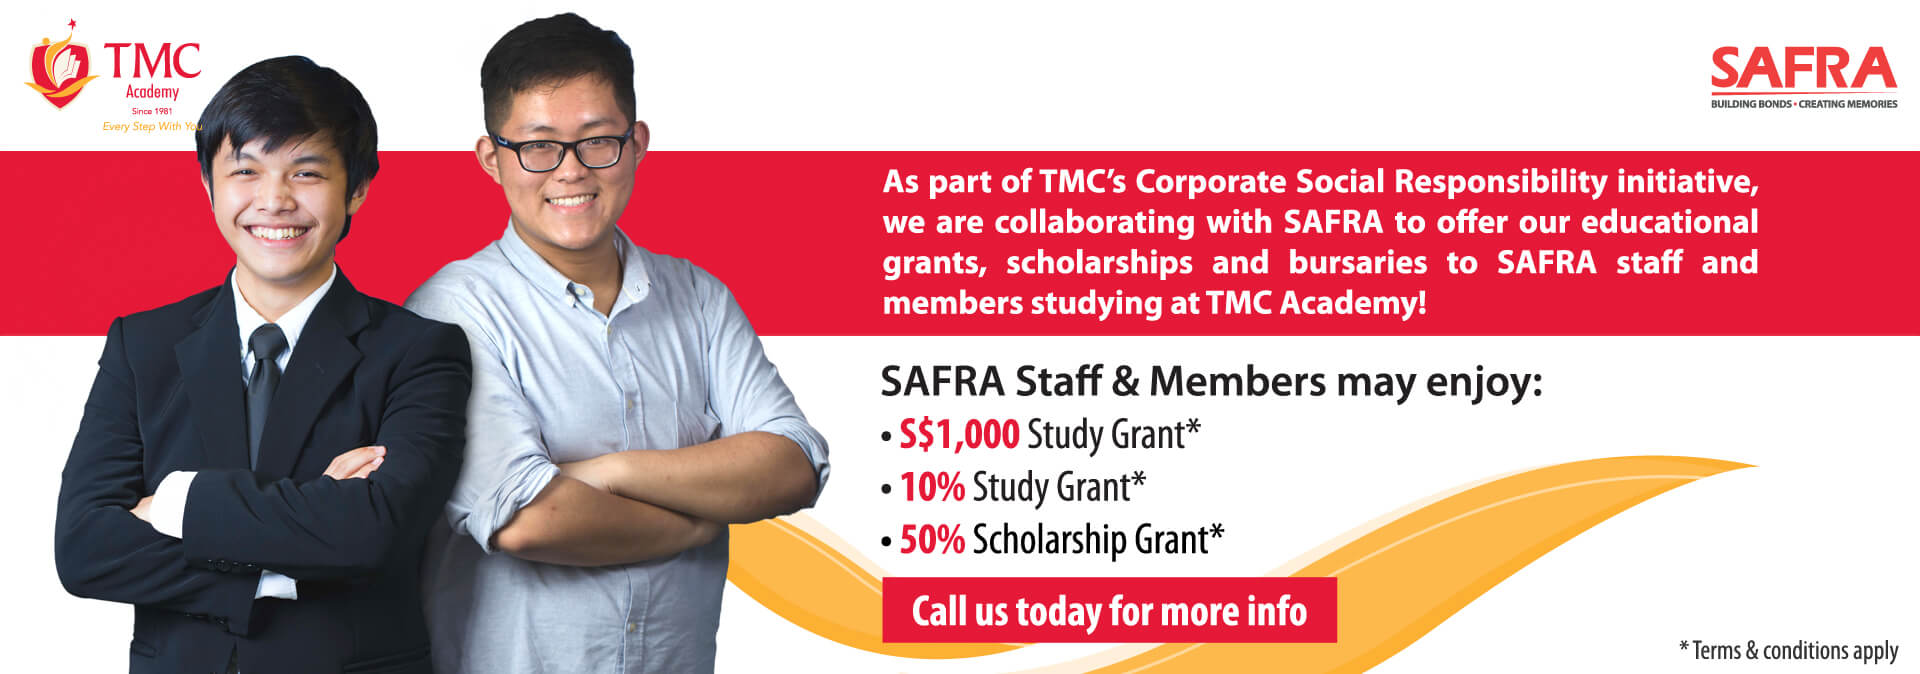 SAFRA Collaboration Banner 2018 @ TMC Academy